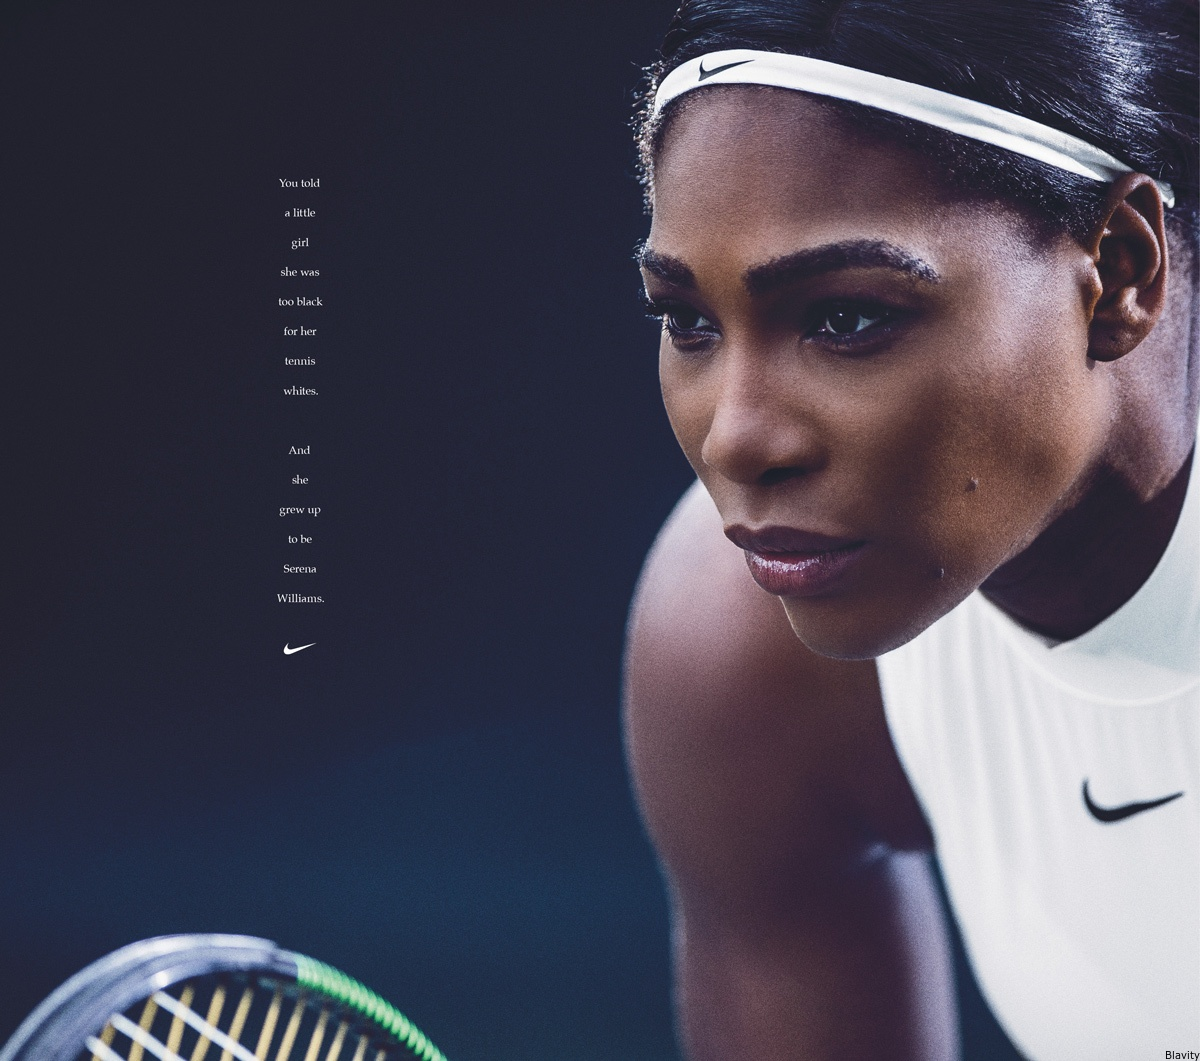 Serena Williams Shows The World  There Is No Wrong Way To Be A Woman  In  New Nike Ad  b44da6c92e5